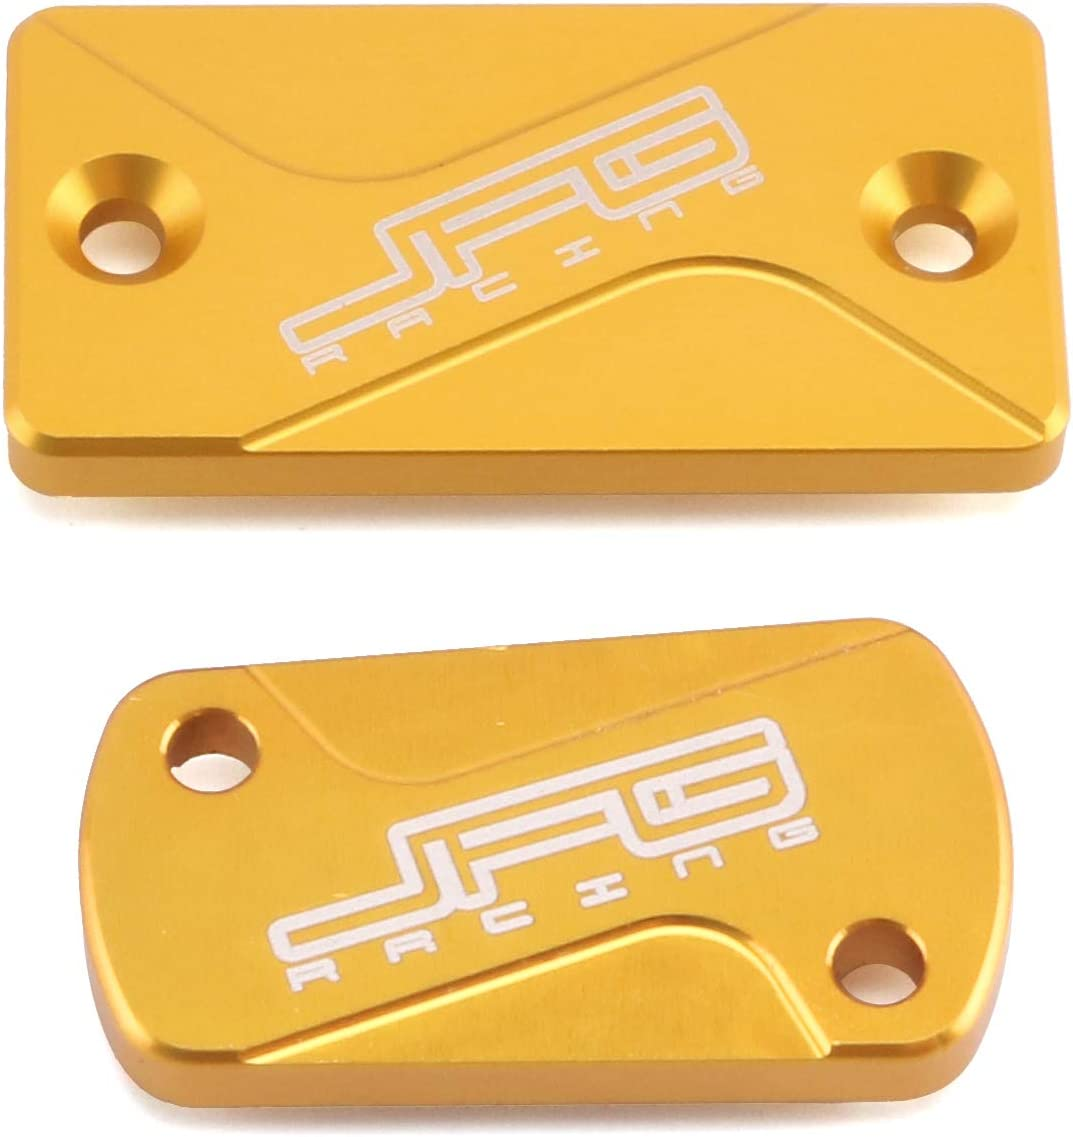 CNC New Shipping Free Billet Ranking TOP9 Front Rear Brake Reservoir Cap For Fluid Cover RM125